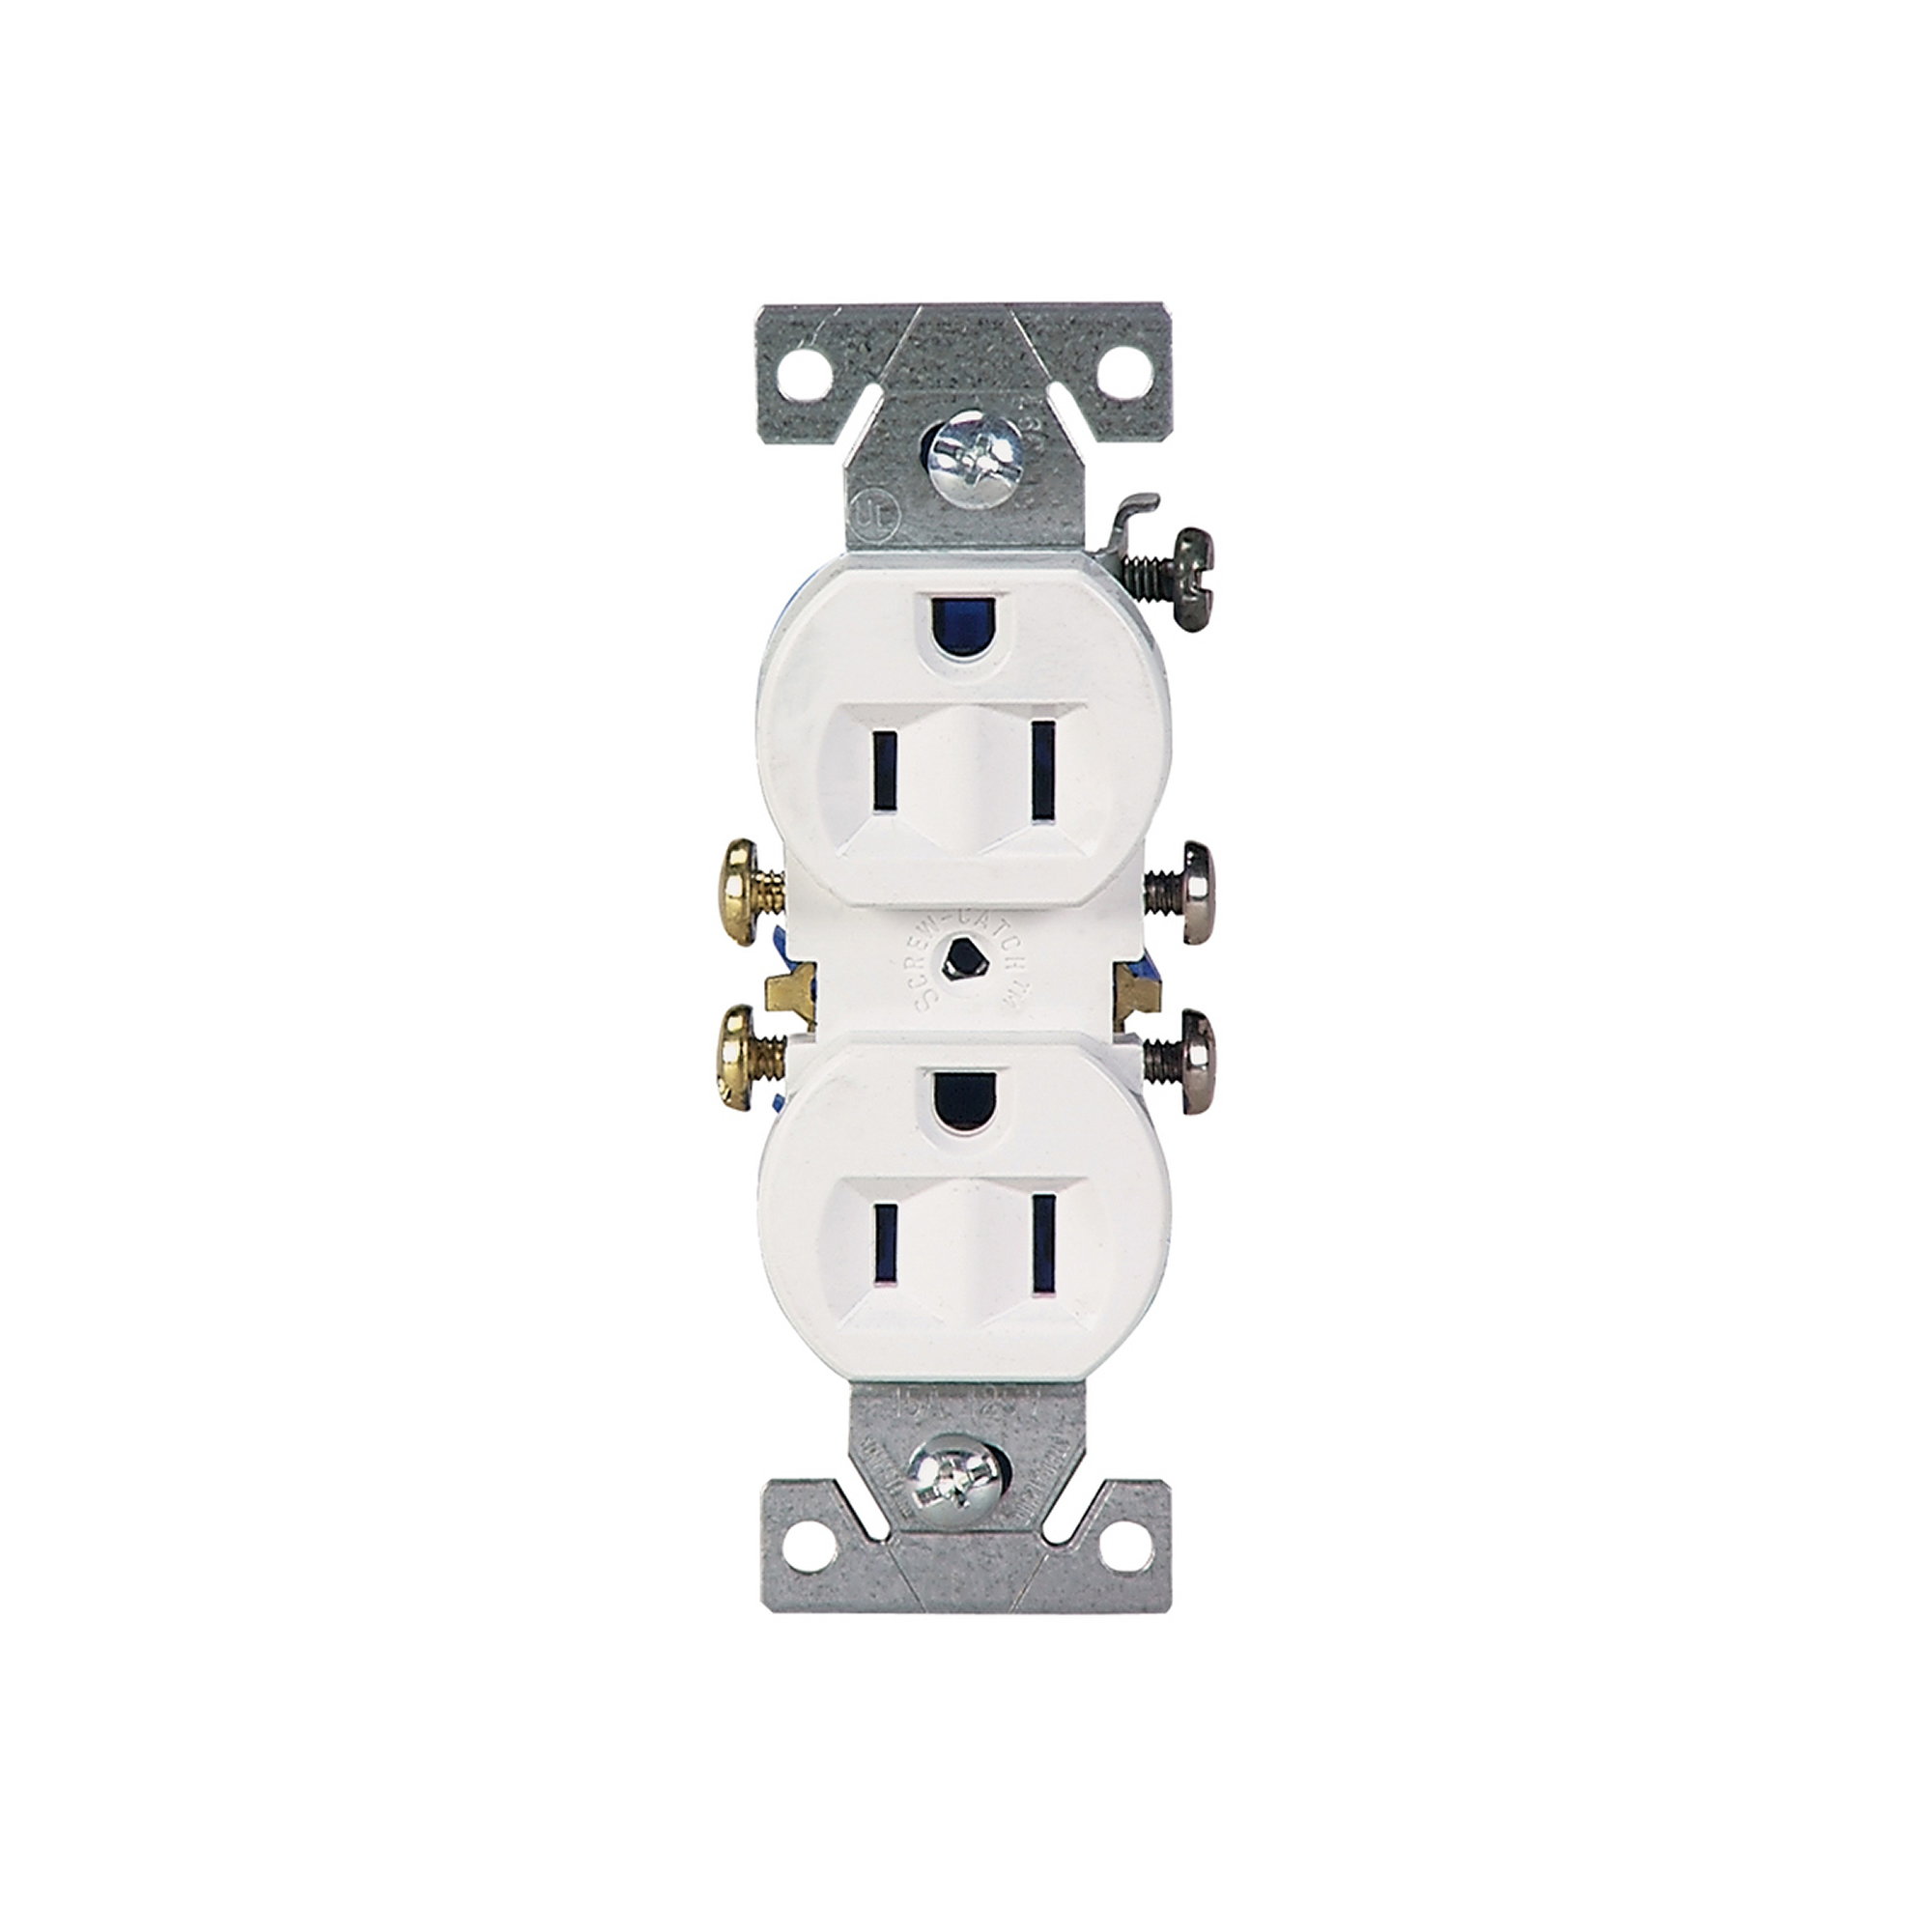 cooper wiring devices 15 amp white duplex receptacle ... wiring a duplex receptacle from a light switch wiring a gfi receptacle #5